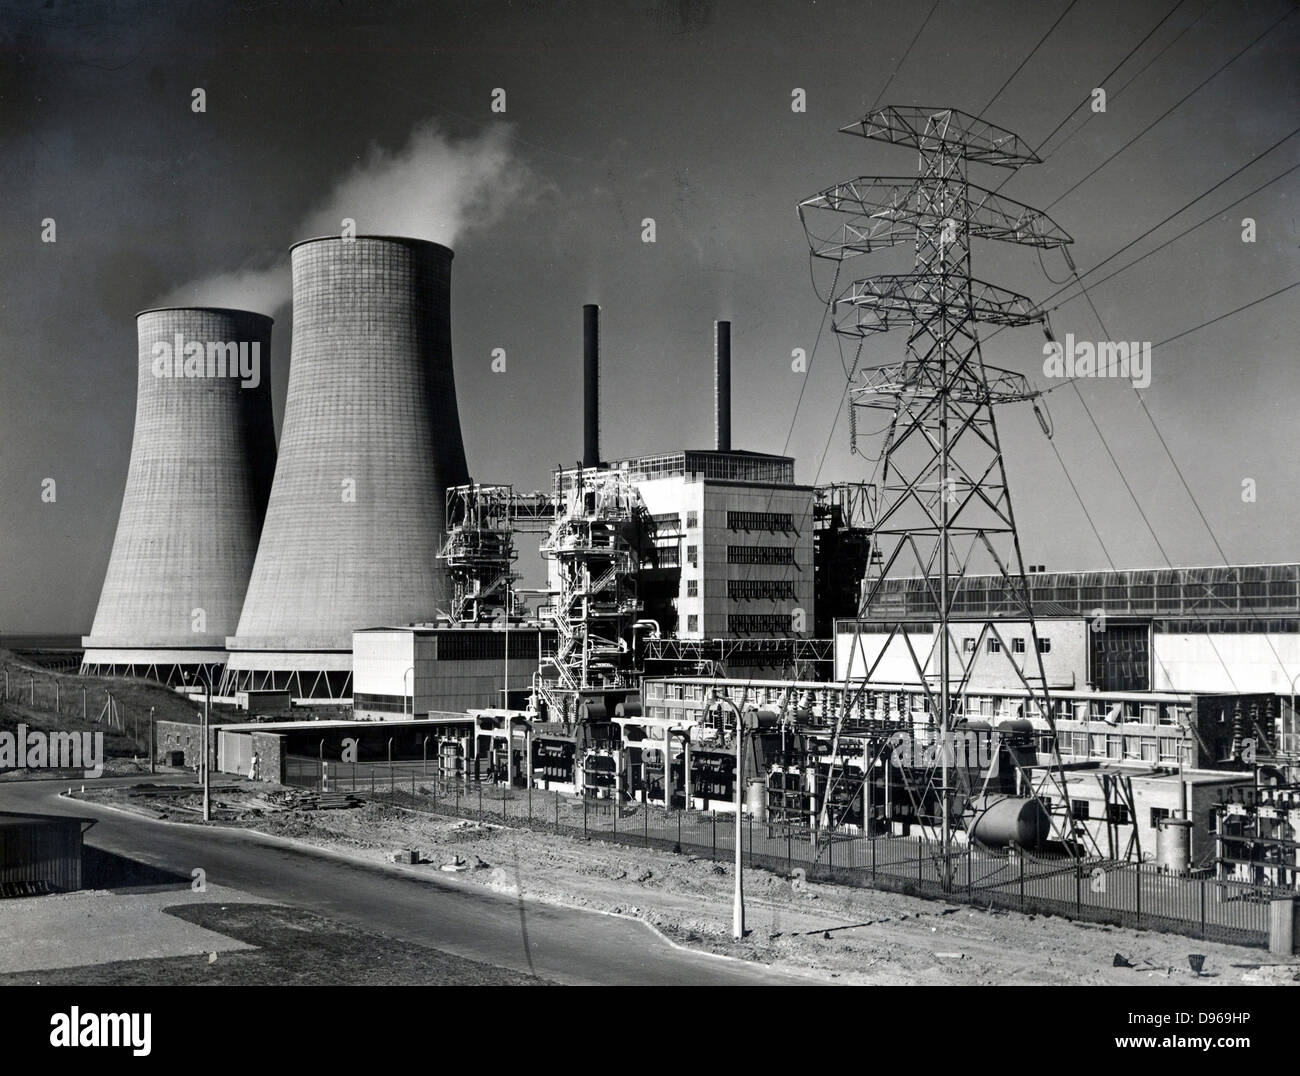 Calder Hall, Cumberland, England, the world's first full scale nuclear power station opened 17 October 1976. - Stock Image